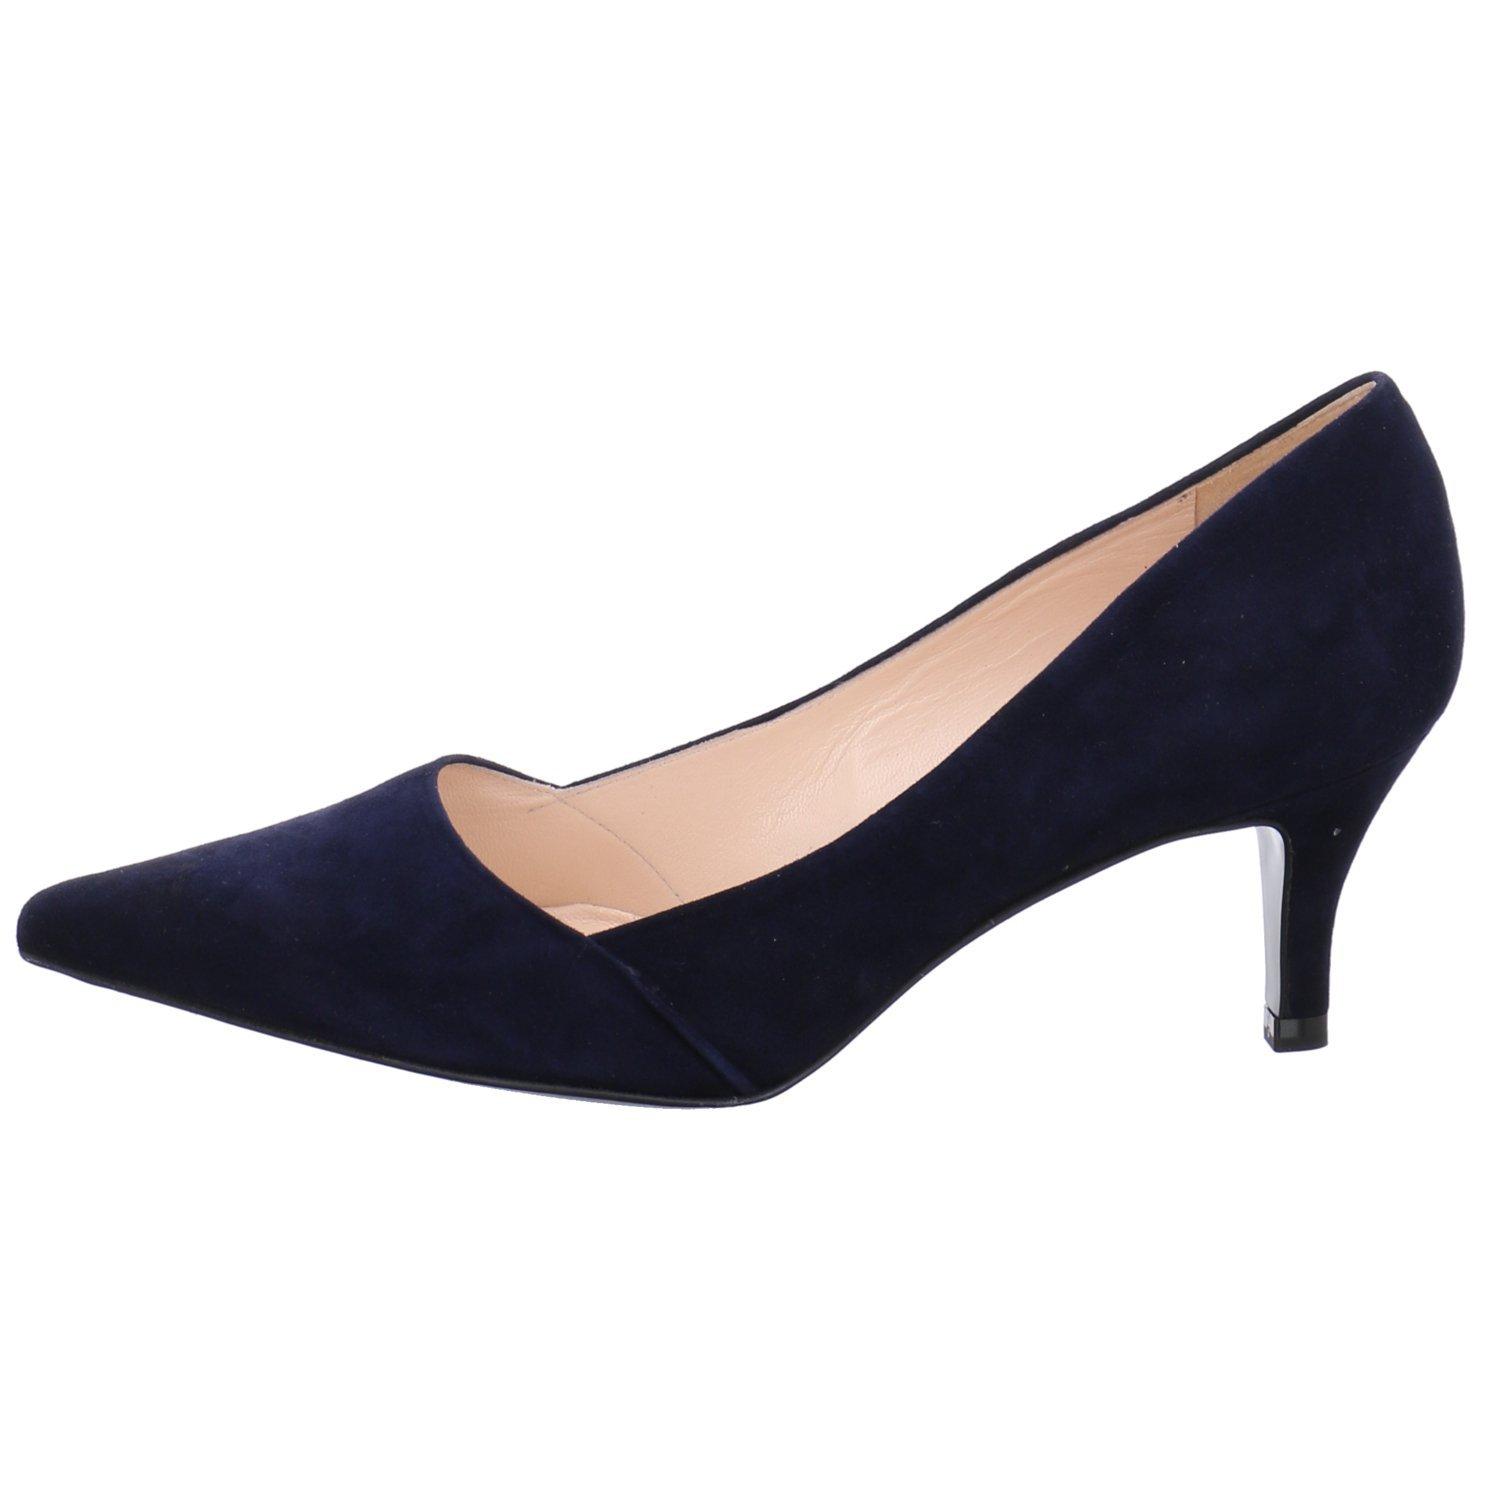 059c3bb2edbf4 Peter Kaiser Semitara Low Pointed Court 6 Navy Suede: Amazon.co.uk: Shoes &  Bags